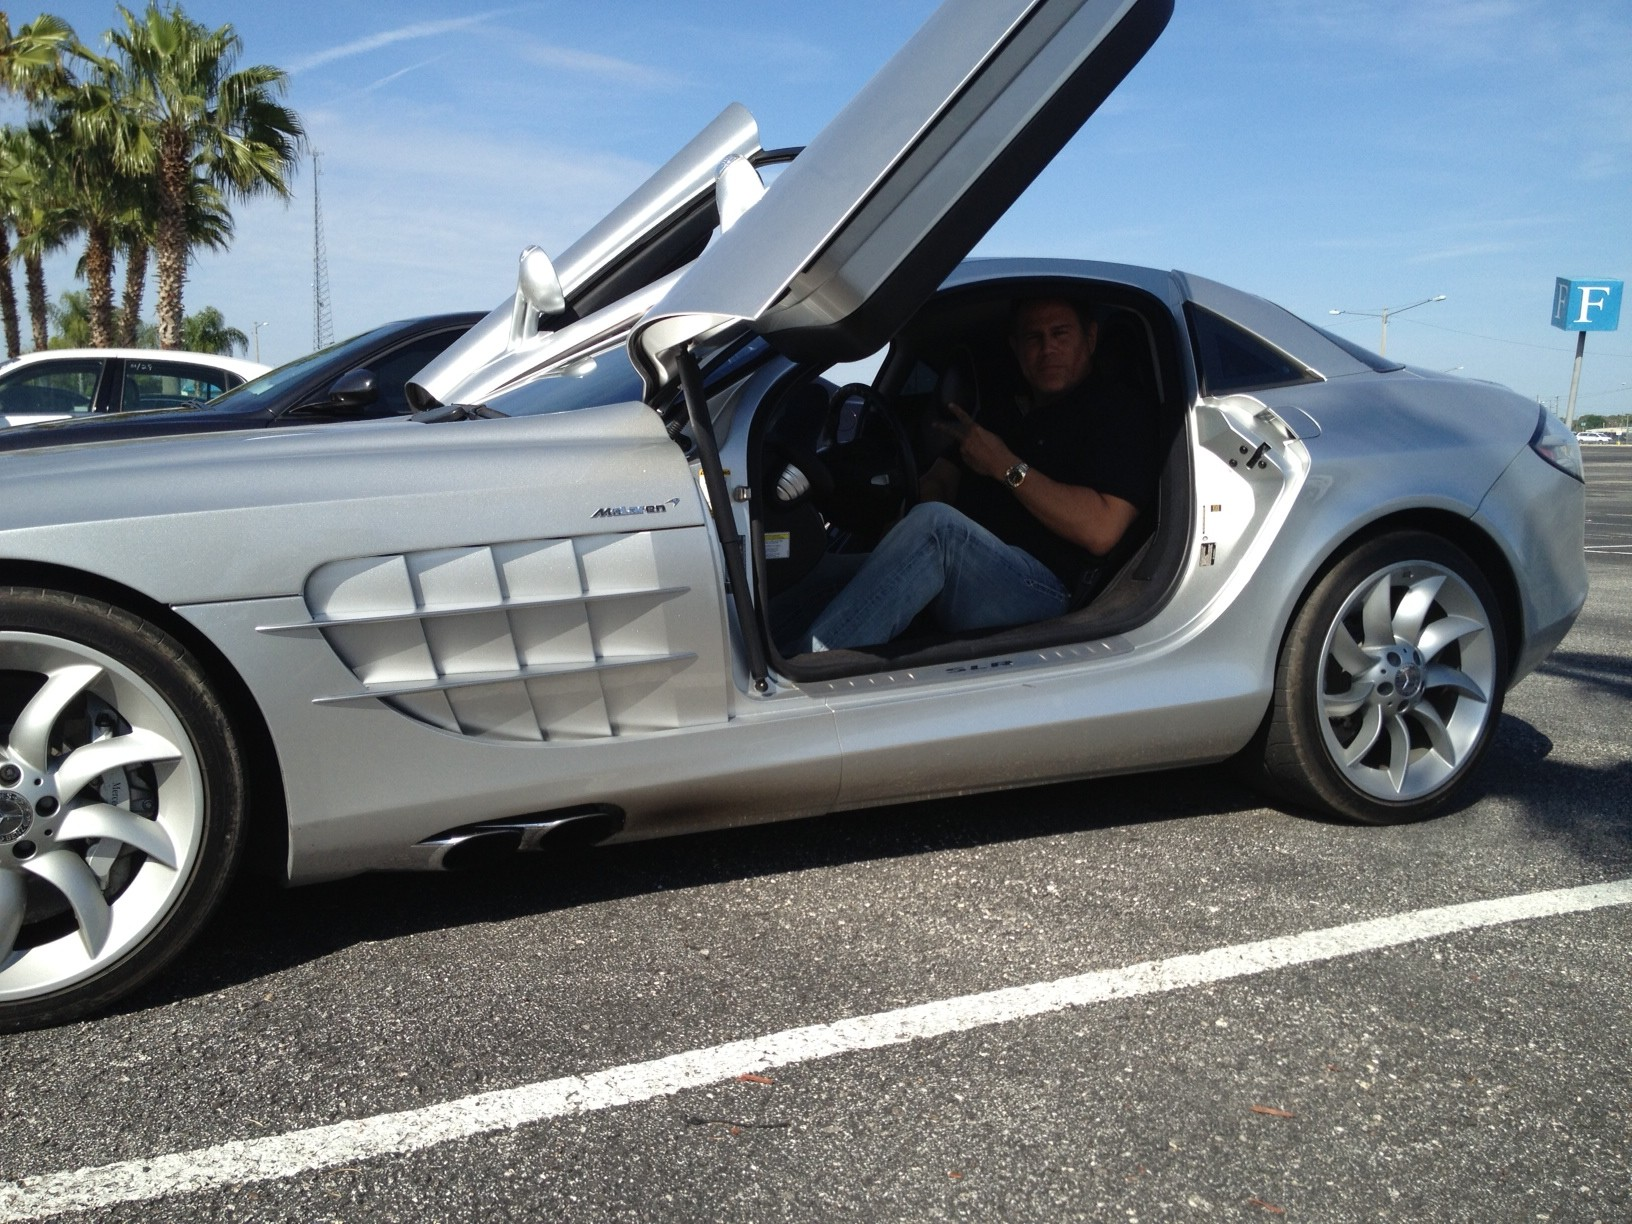 The Keith Middlebrook Foundation, Keith Middlebrook, FICO 911, SLR Mclaren, Ballers & Players